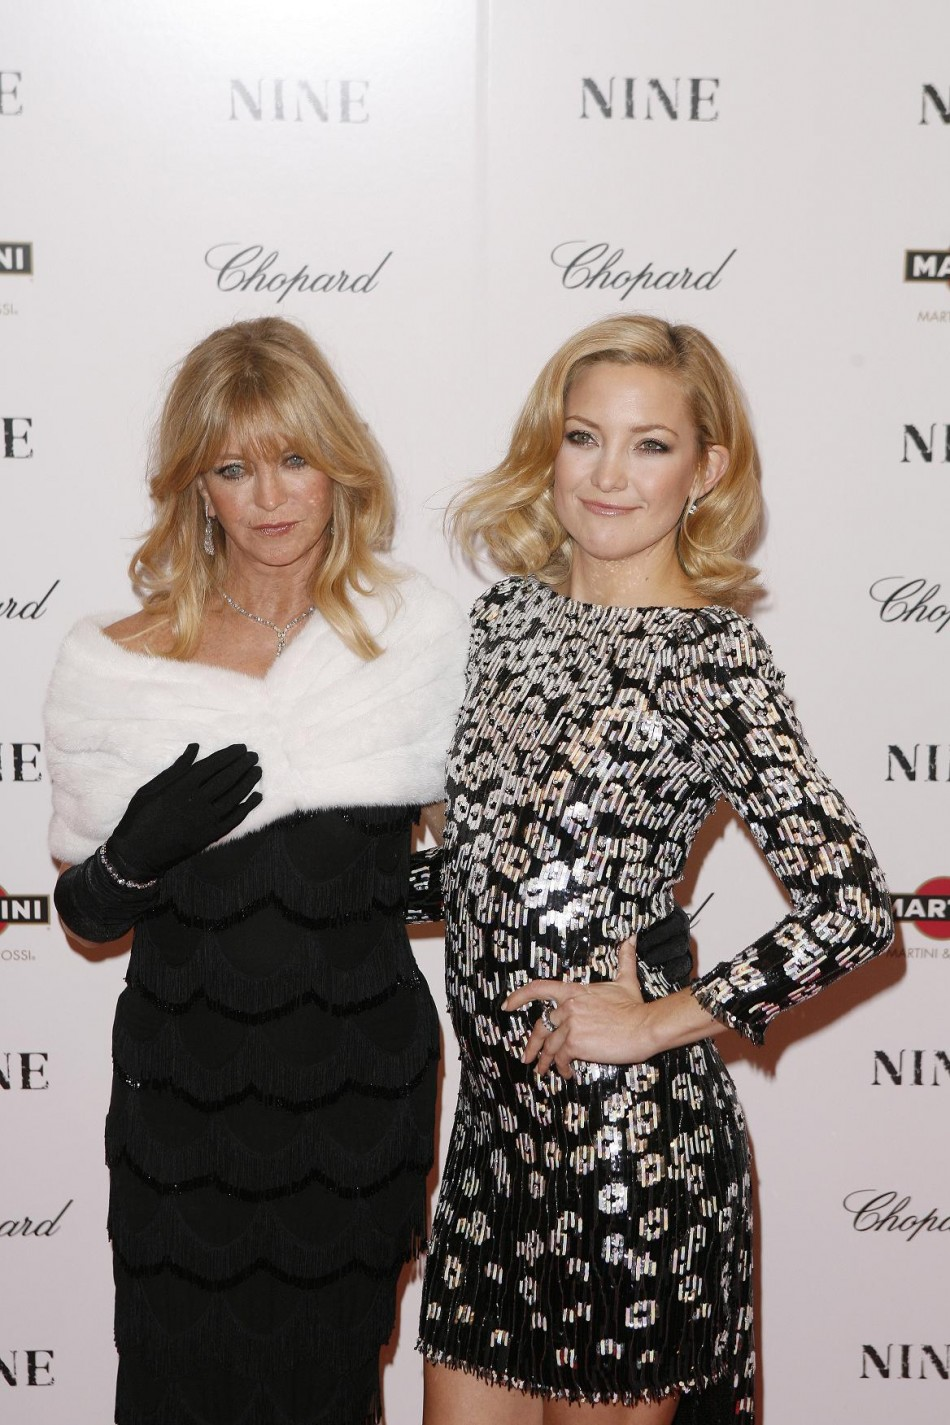 Cast member Kate Hudson arrives with her mother, Goldie Hawn, at the premiere of the film quotNinequot in New York.